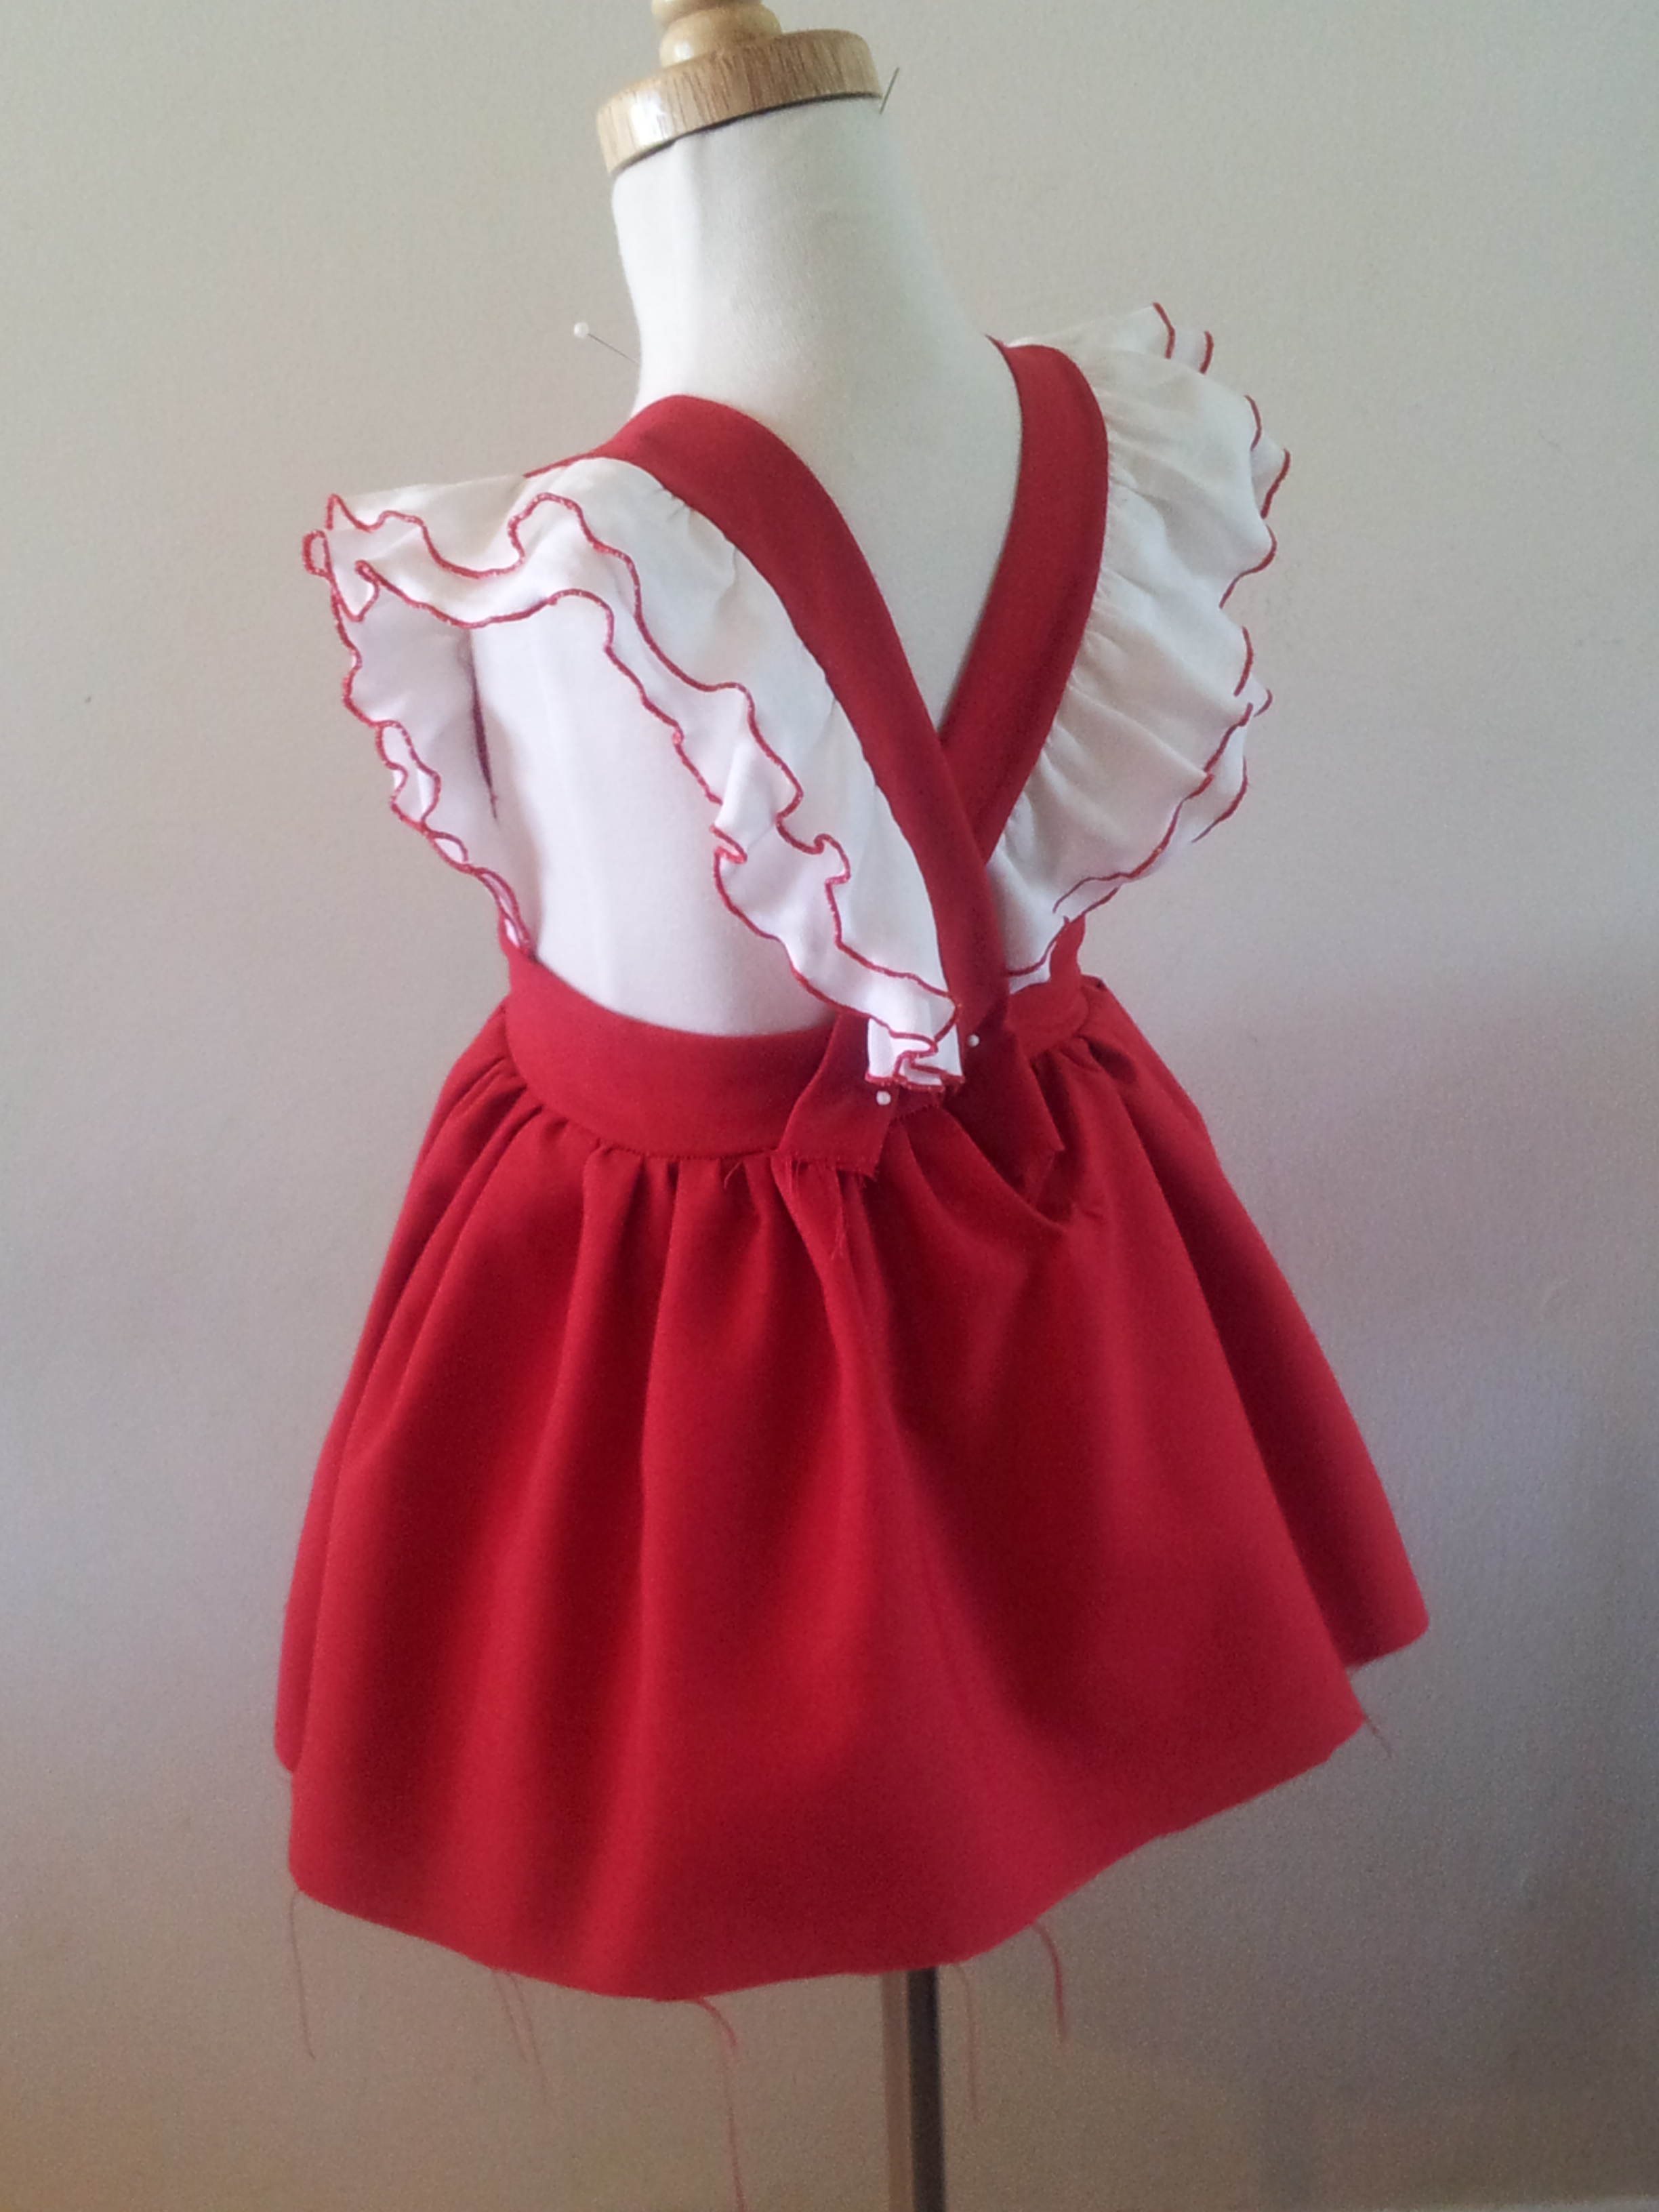 Knitting Pattern Baby Girl Pinafore : vintage pinafore Ms. Belles Boutique